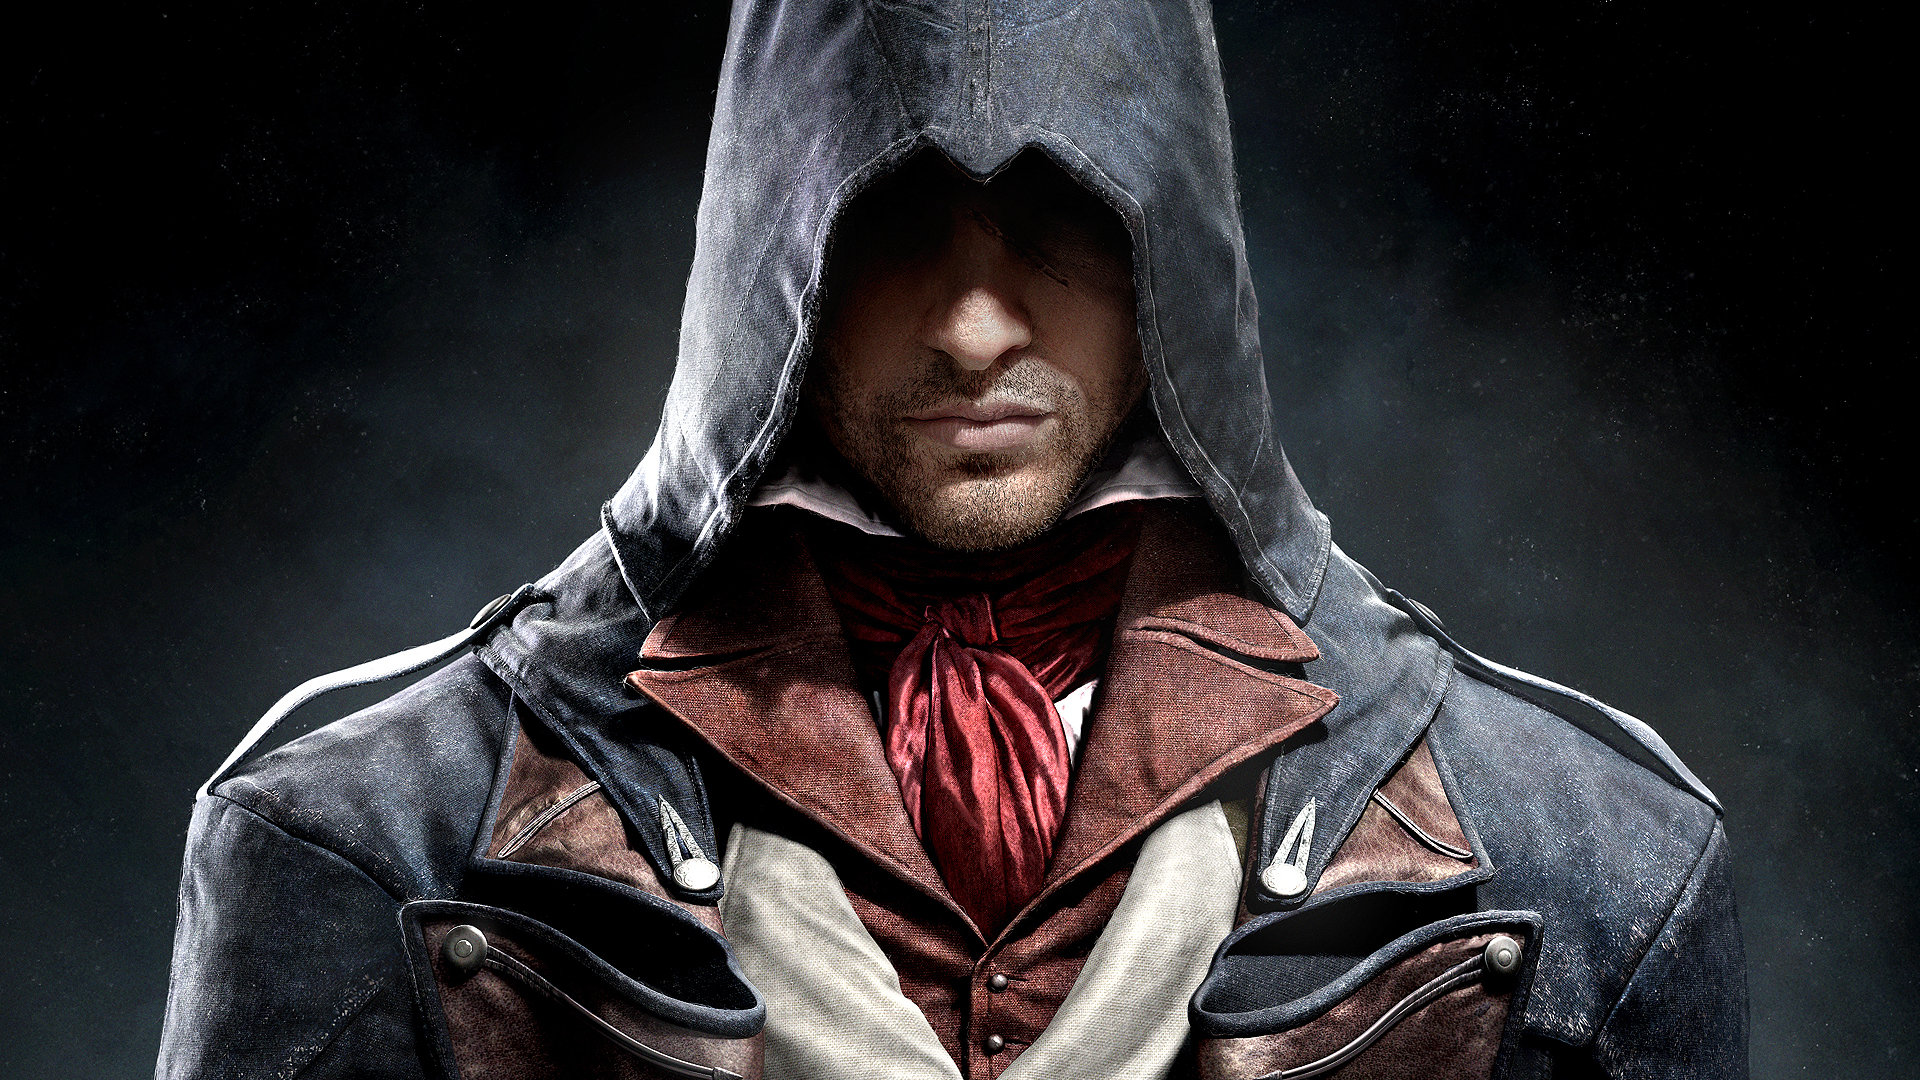 Assassins-Creed-Unity-Arno 2310